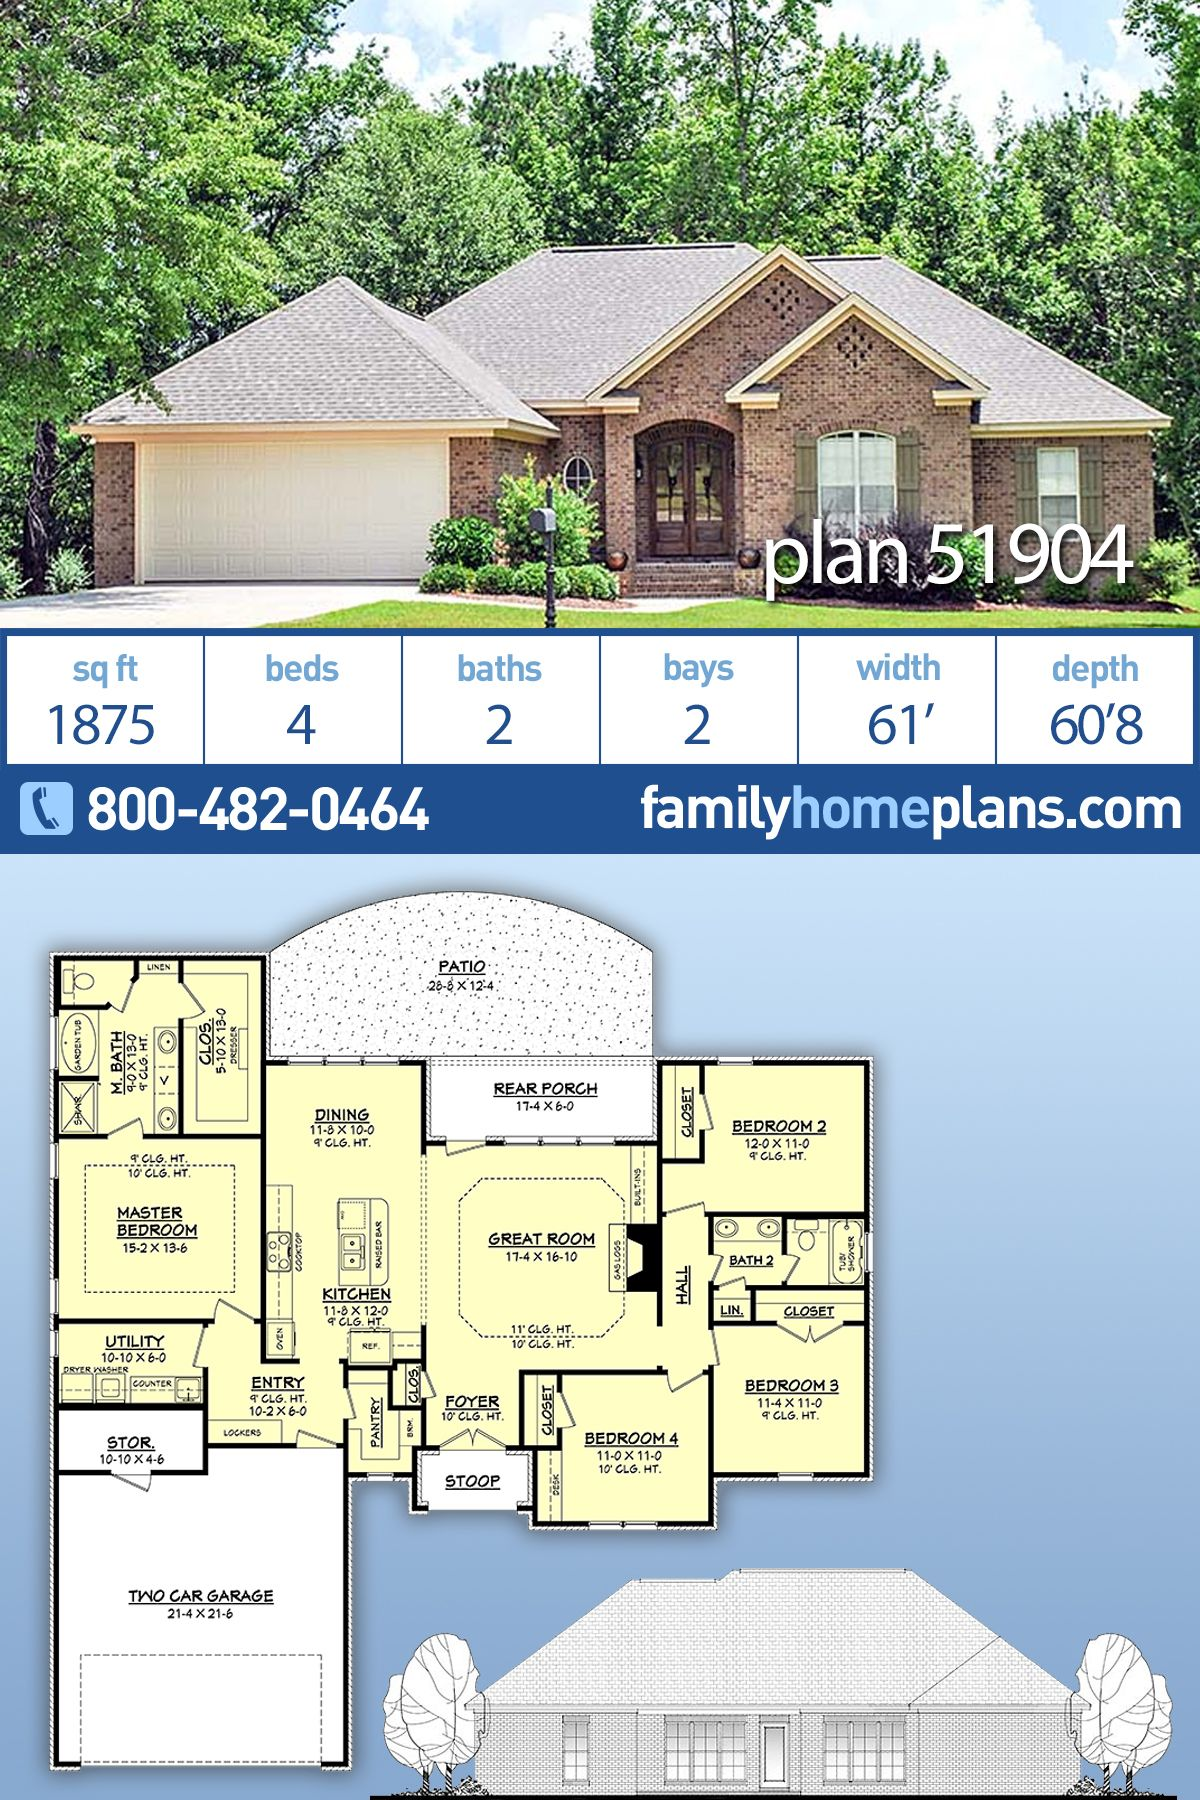 Traditional Style House Plan 51904 With 4 Bed 2 Bath 2 Car Garage Country Style House Plans House Plans Farmhouse Traditional Brick Home